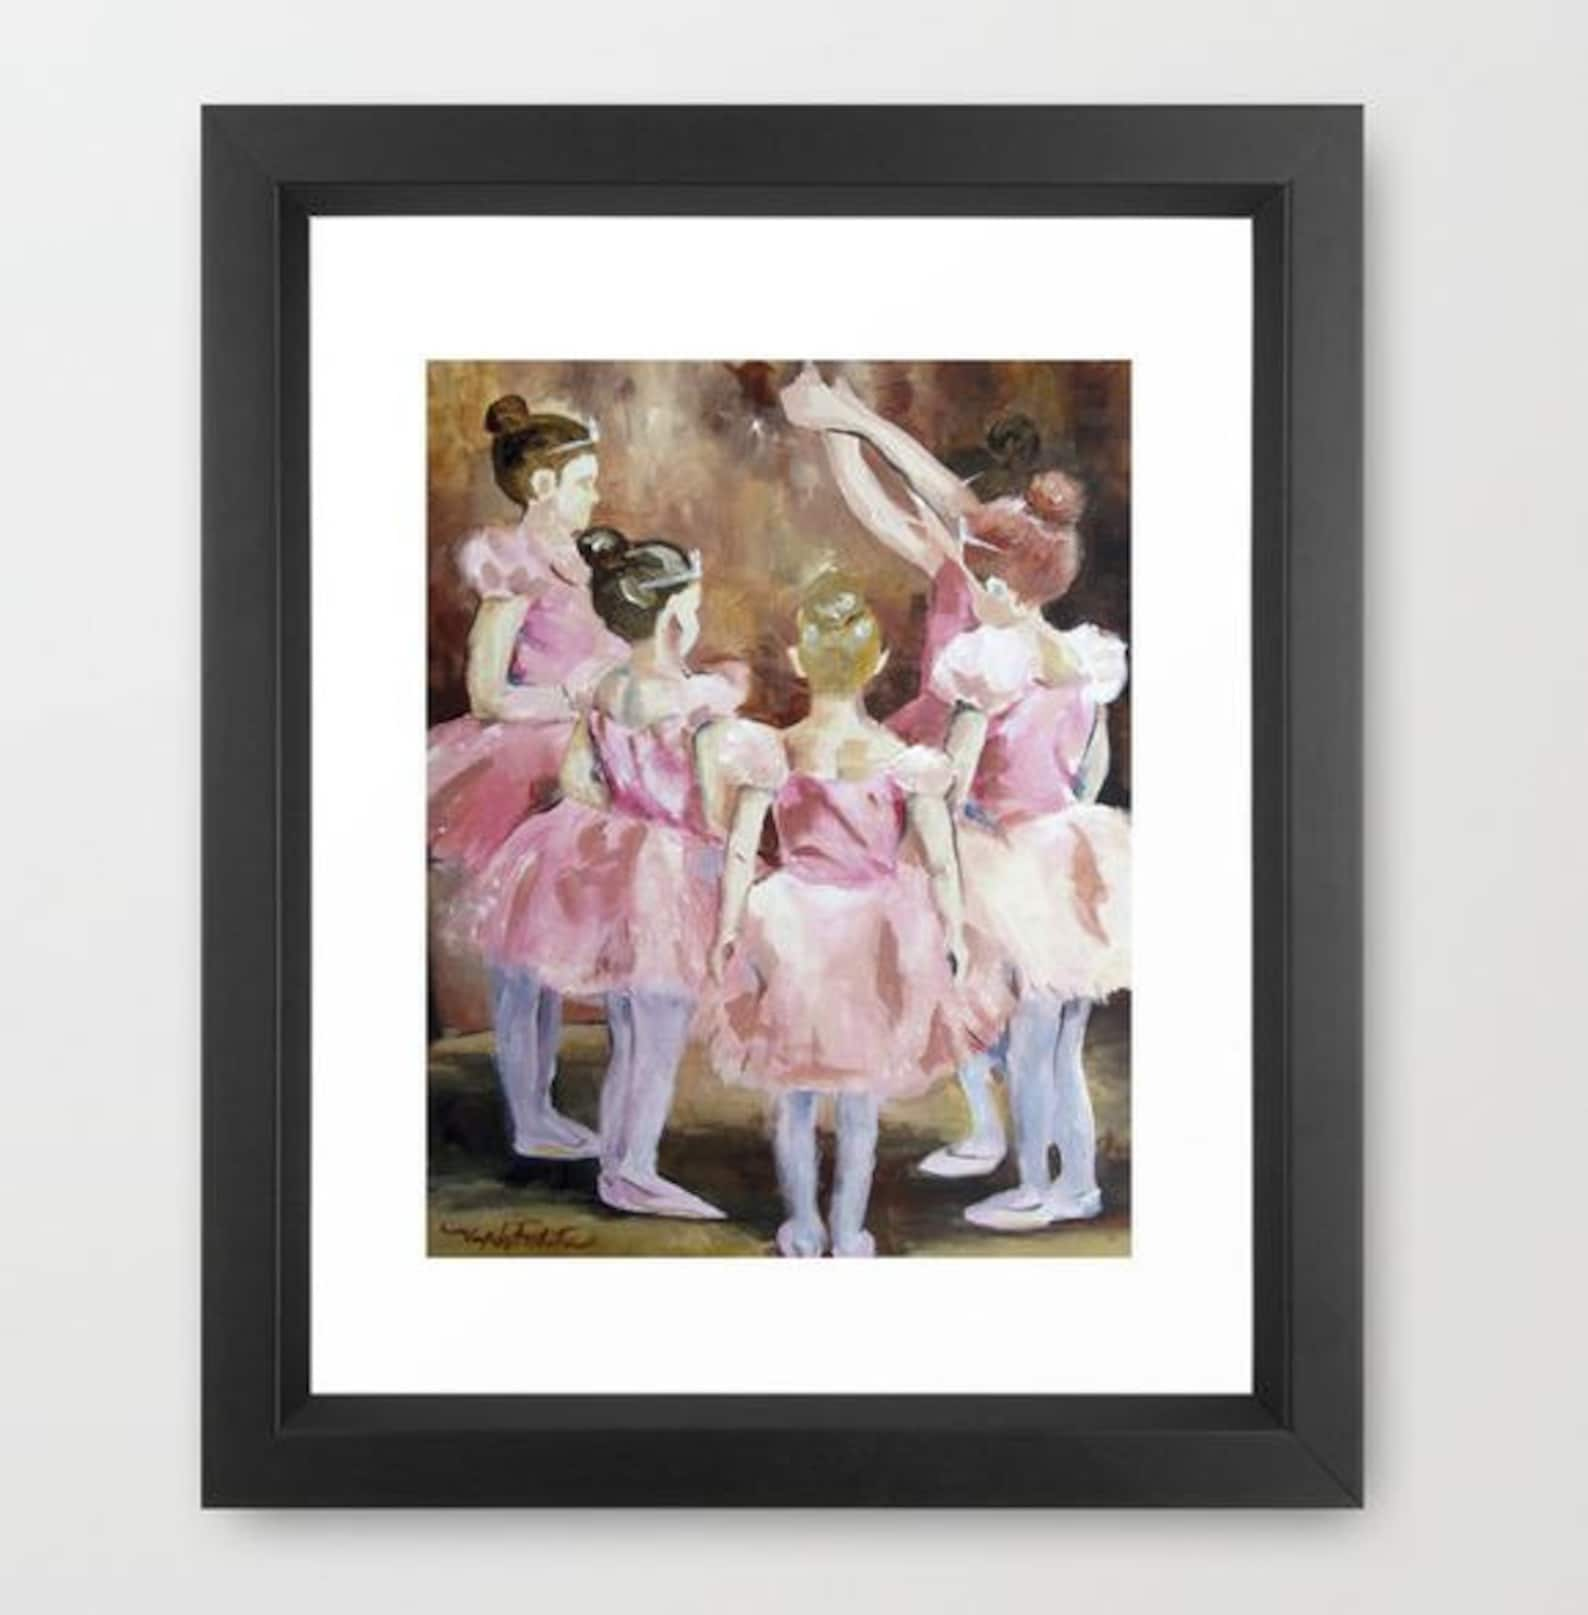 before the dance - ballet series - pink girls in tutus 11x14 poster print kids room wall artwork